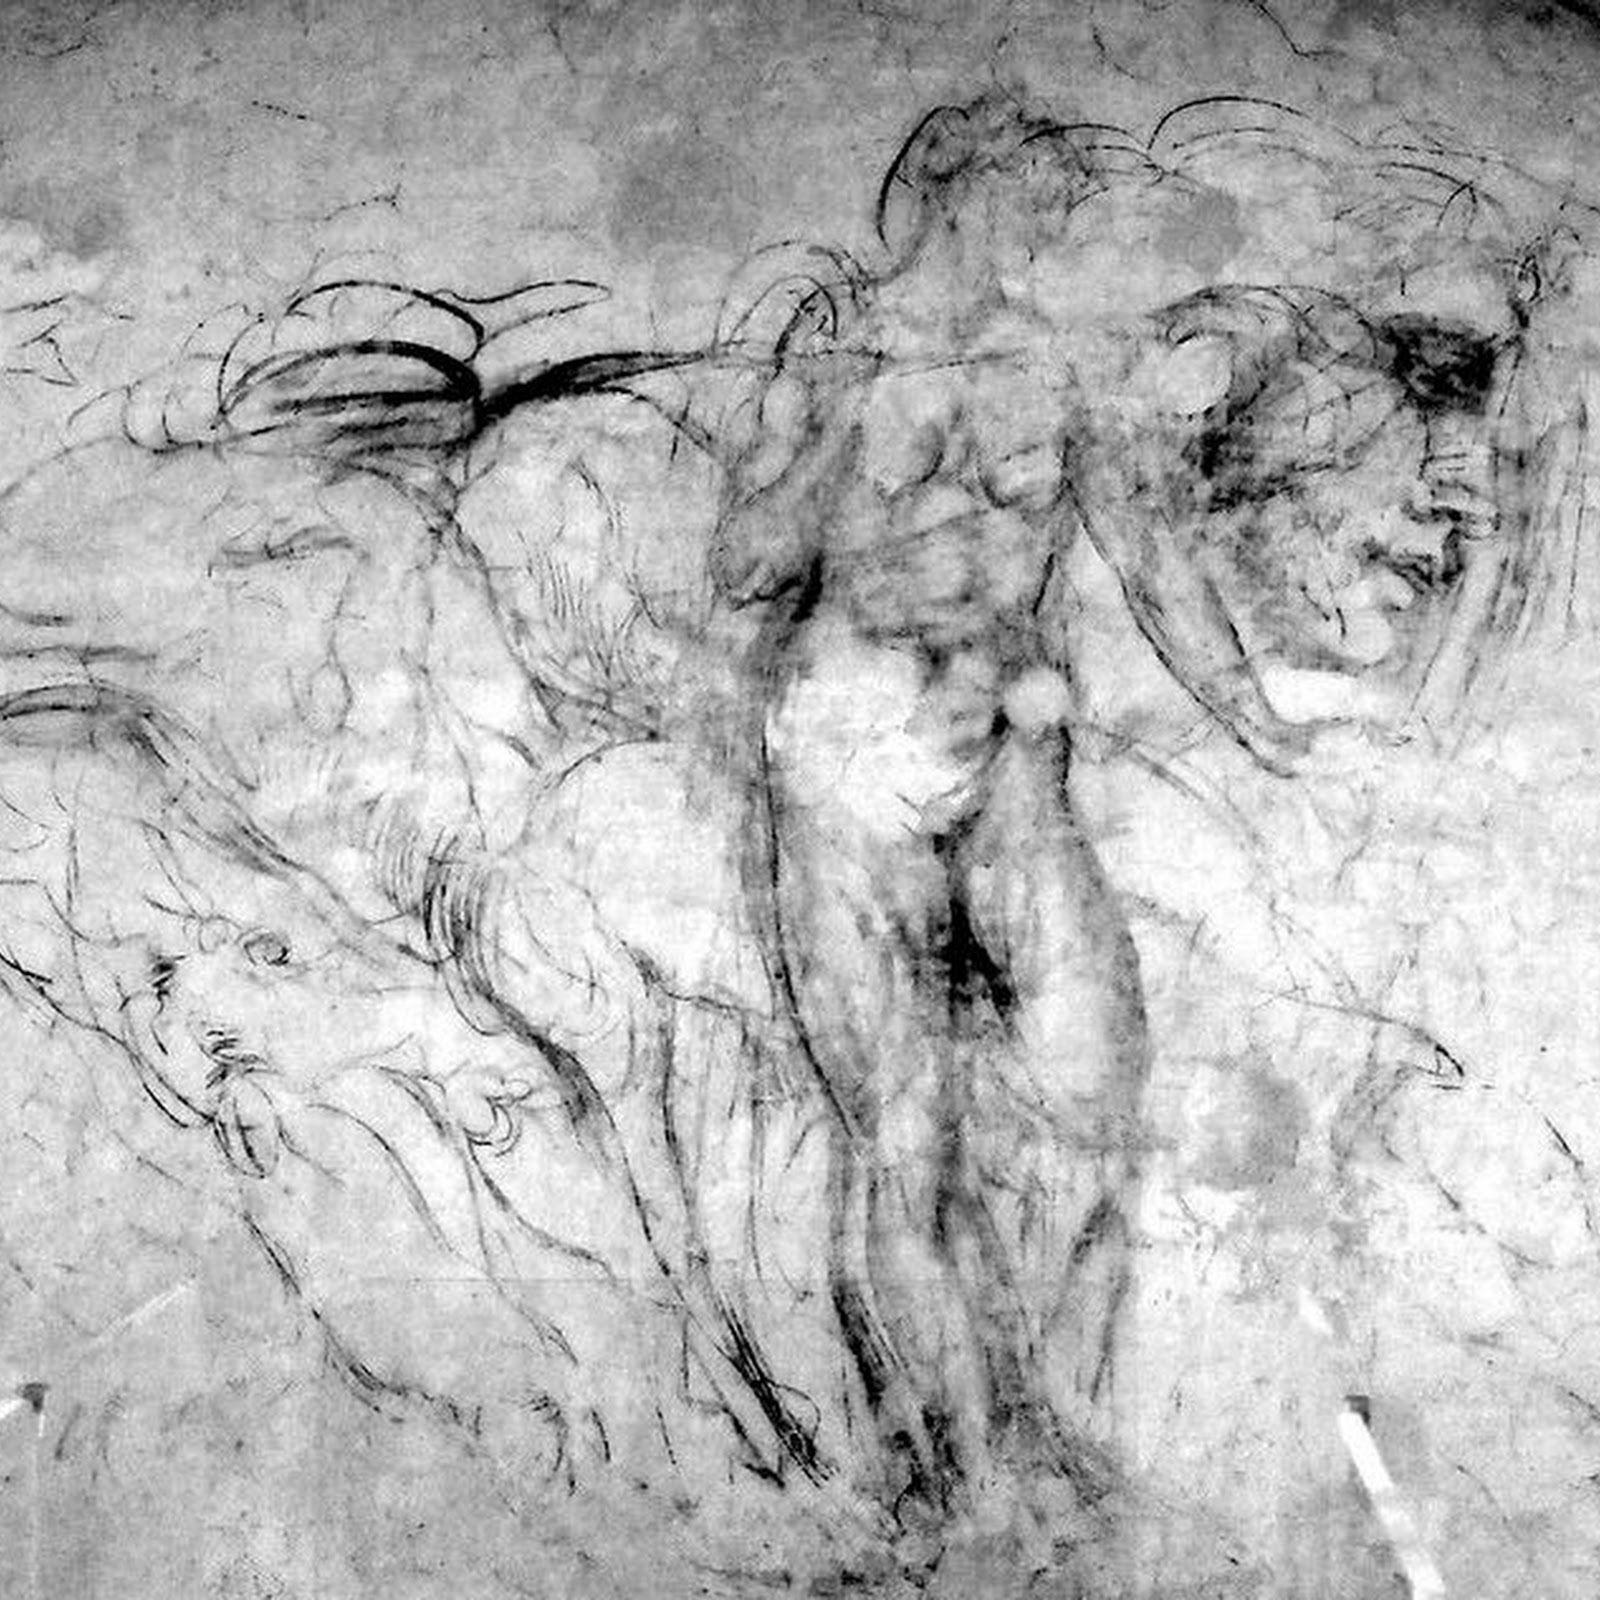 Michelangelo's Hidden Drawings at Medici Chapels